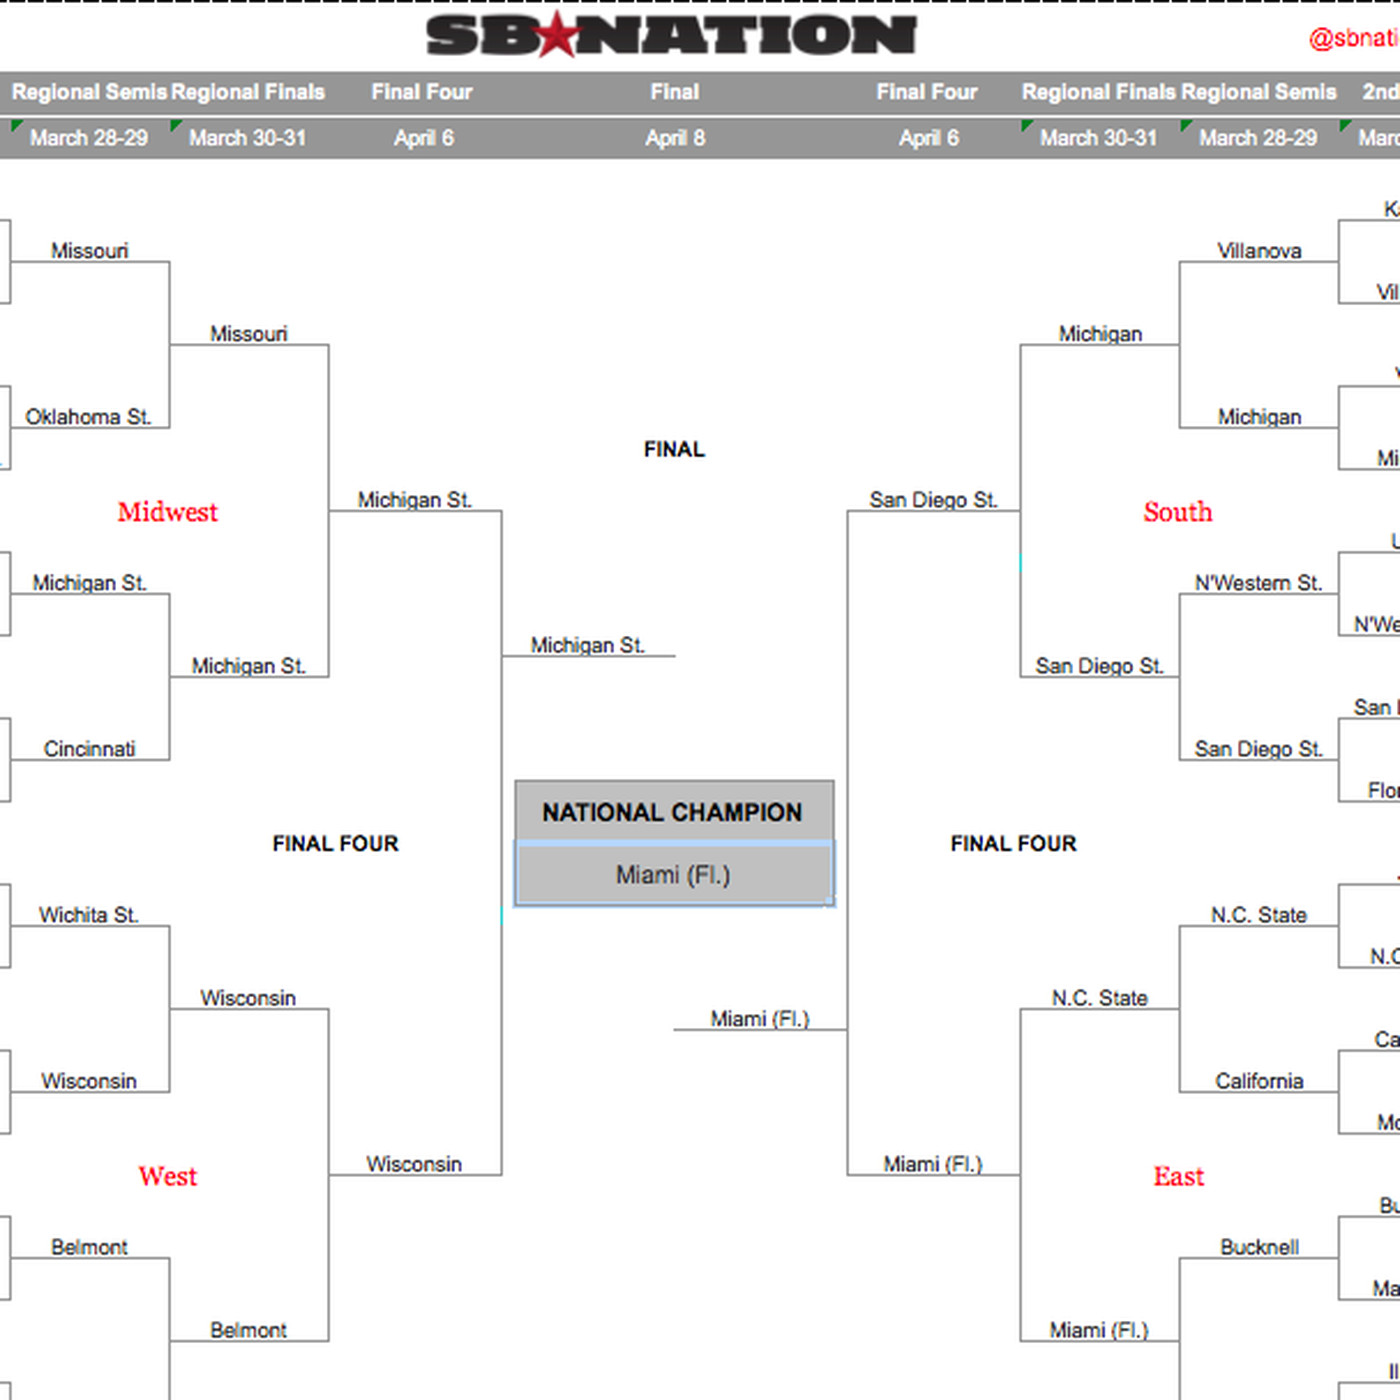 2013 Ncaa Bracket Picks Predictions Based On Mascot Fights